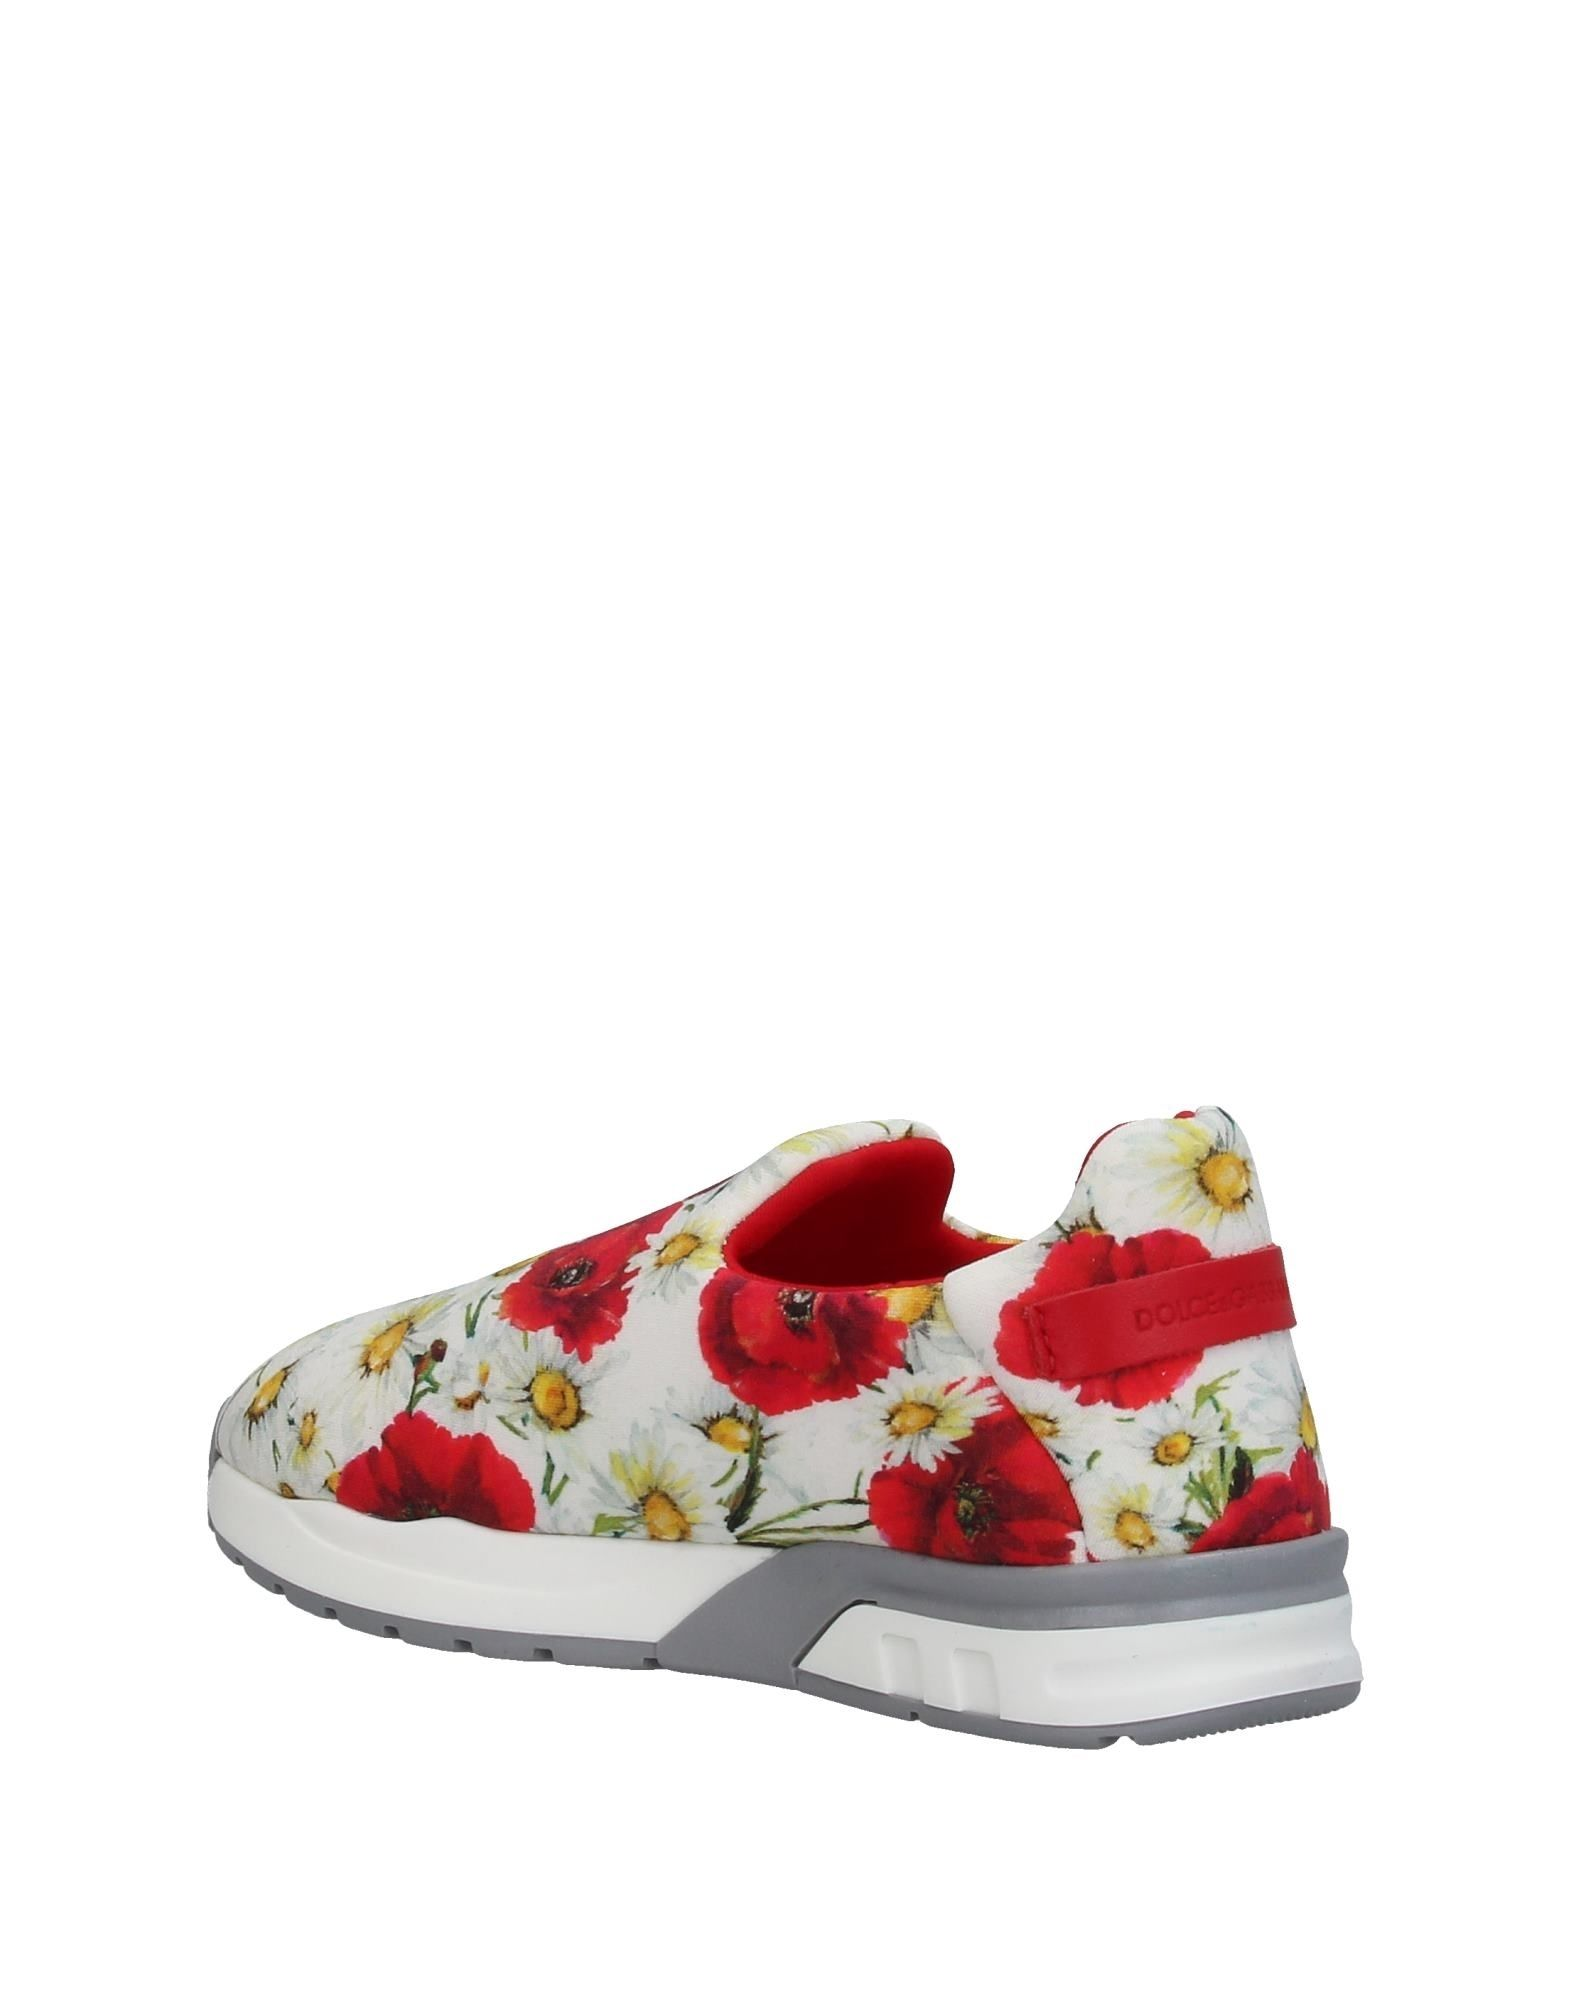 c41393c034e8d Dolce   Gabbana  Floral Girl s Sneakers (Kids) from Stush Fashionista